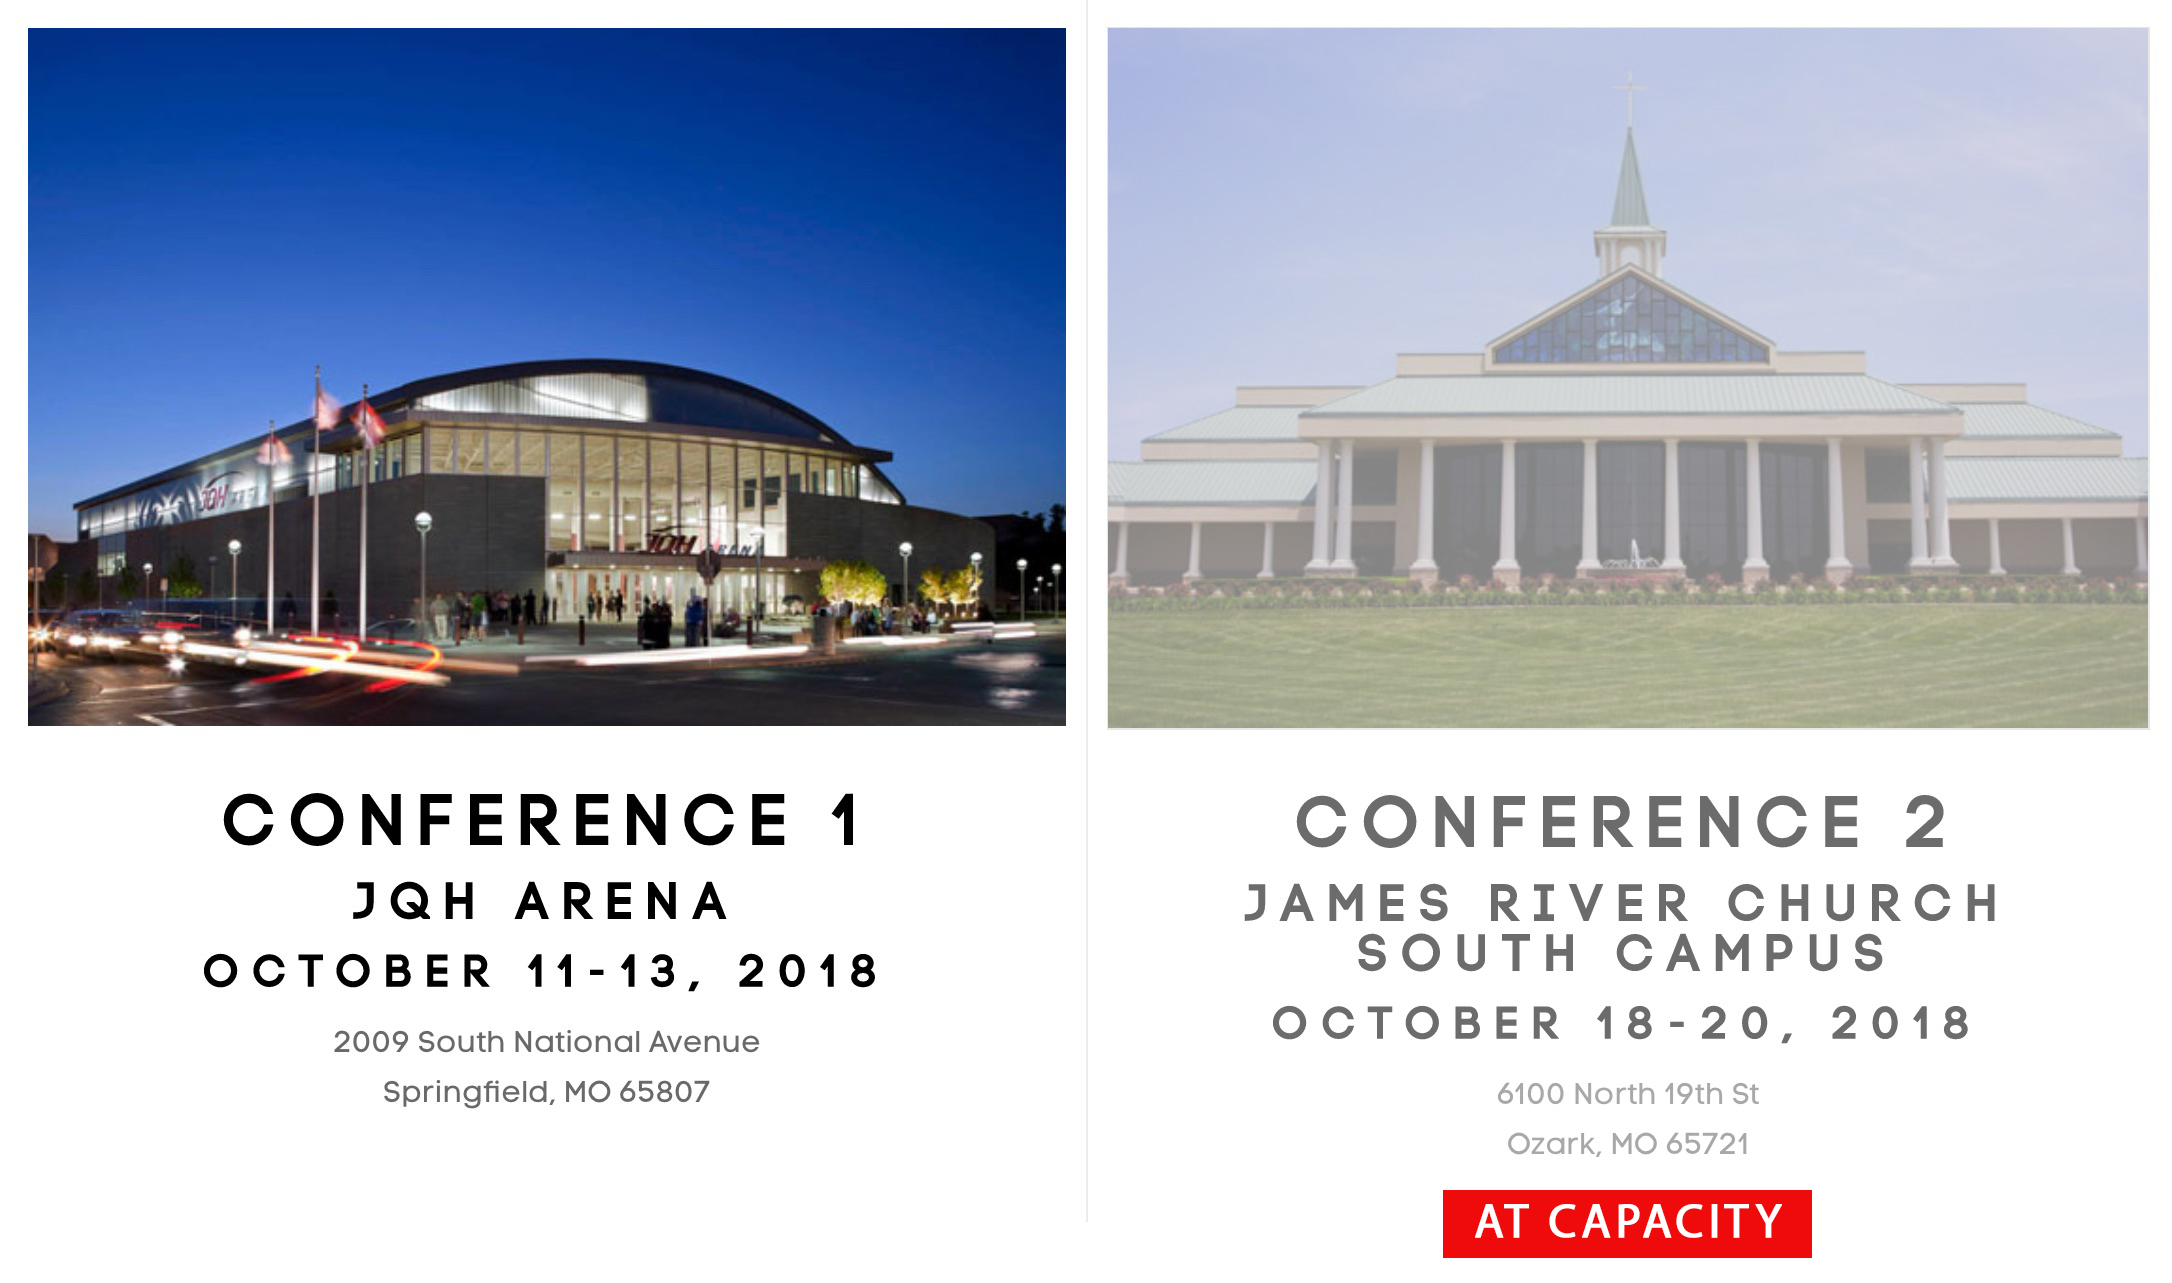 Conference Locations